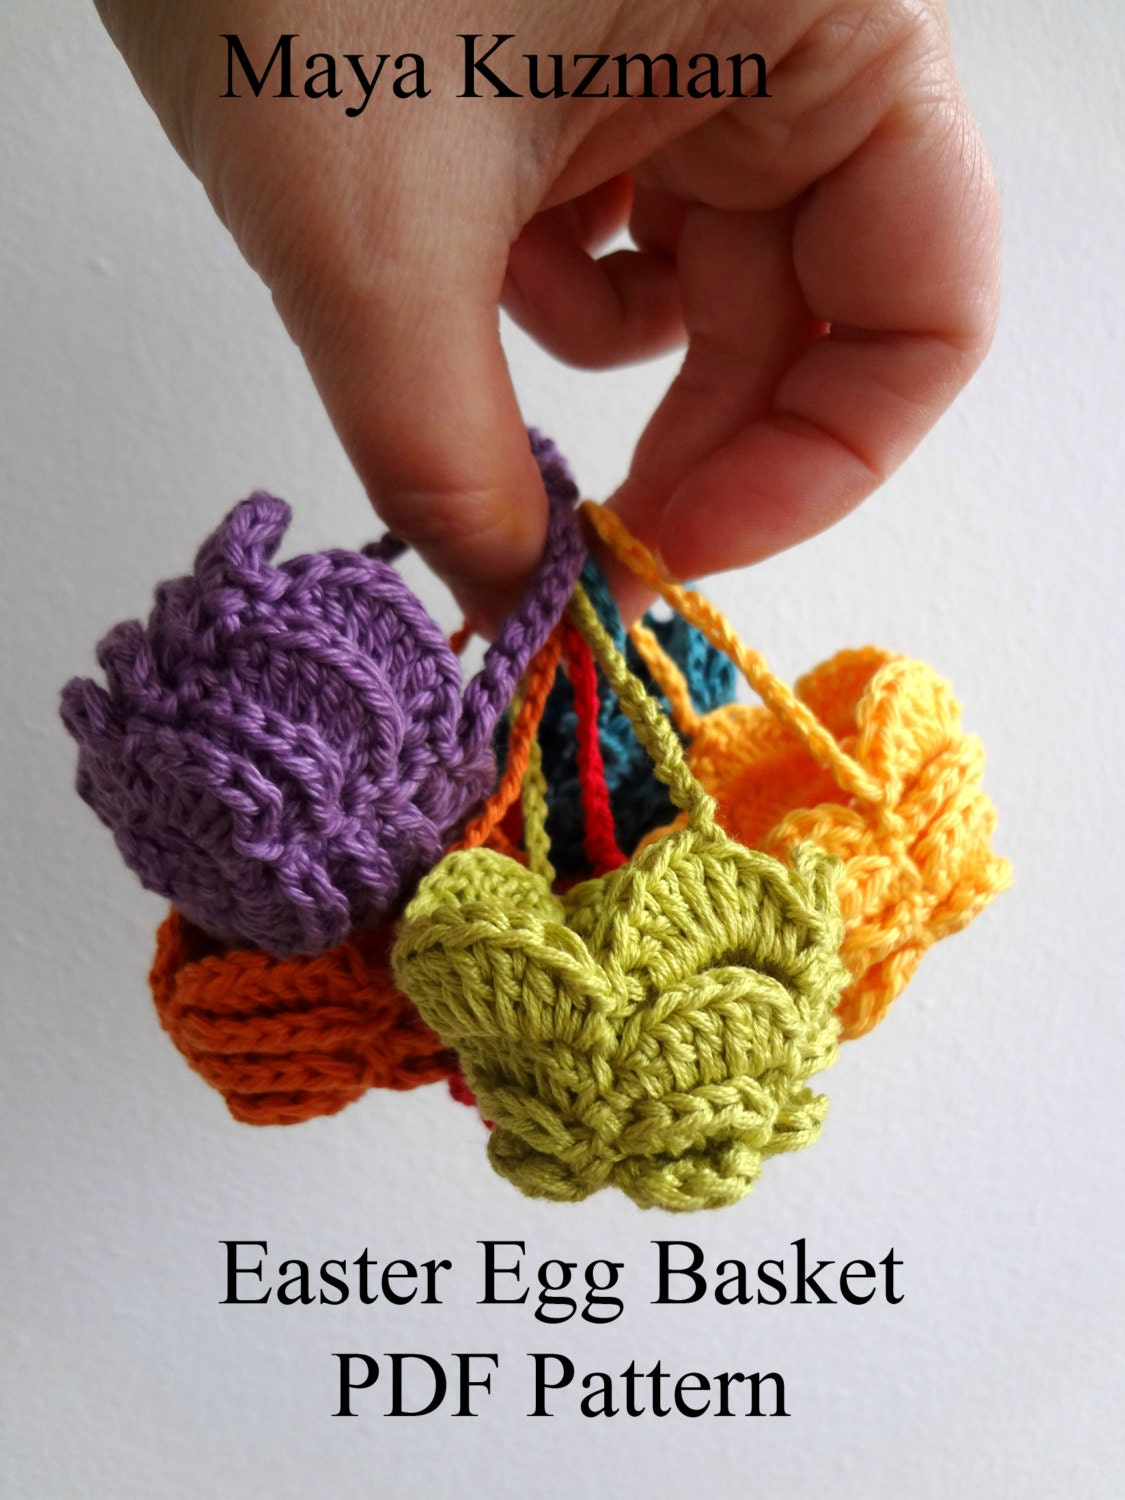 Easter Egg Crocheted Basket -  egg cozy - PDF Pattern - photo tutorial, sell what you make - sewella